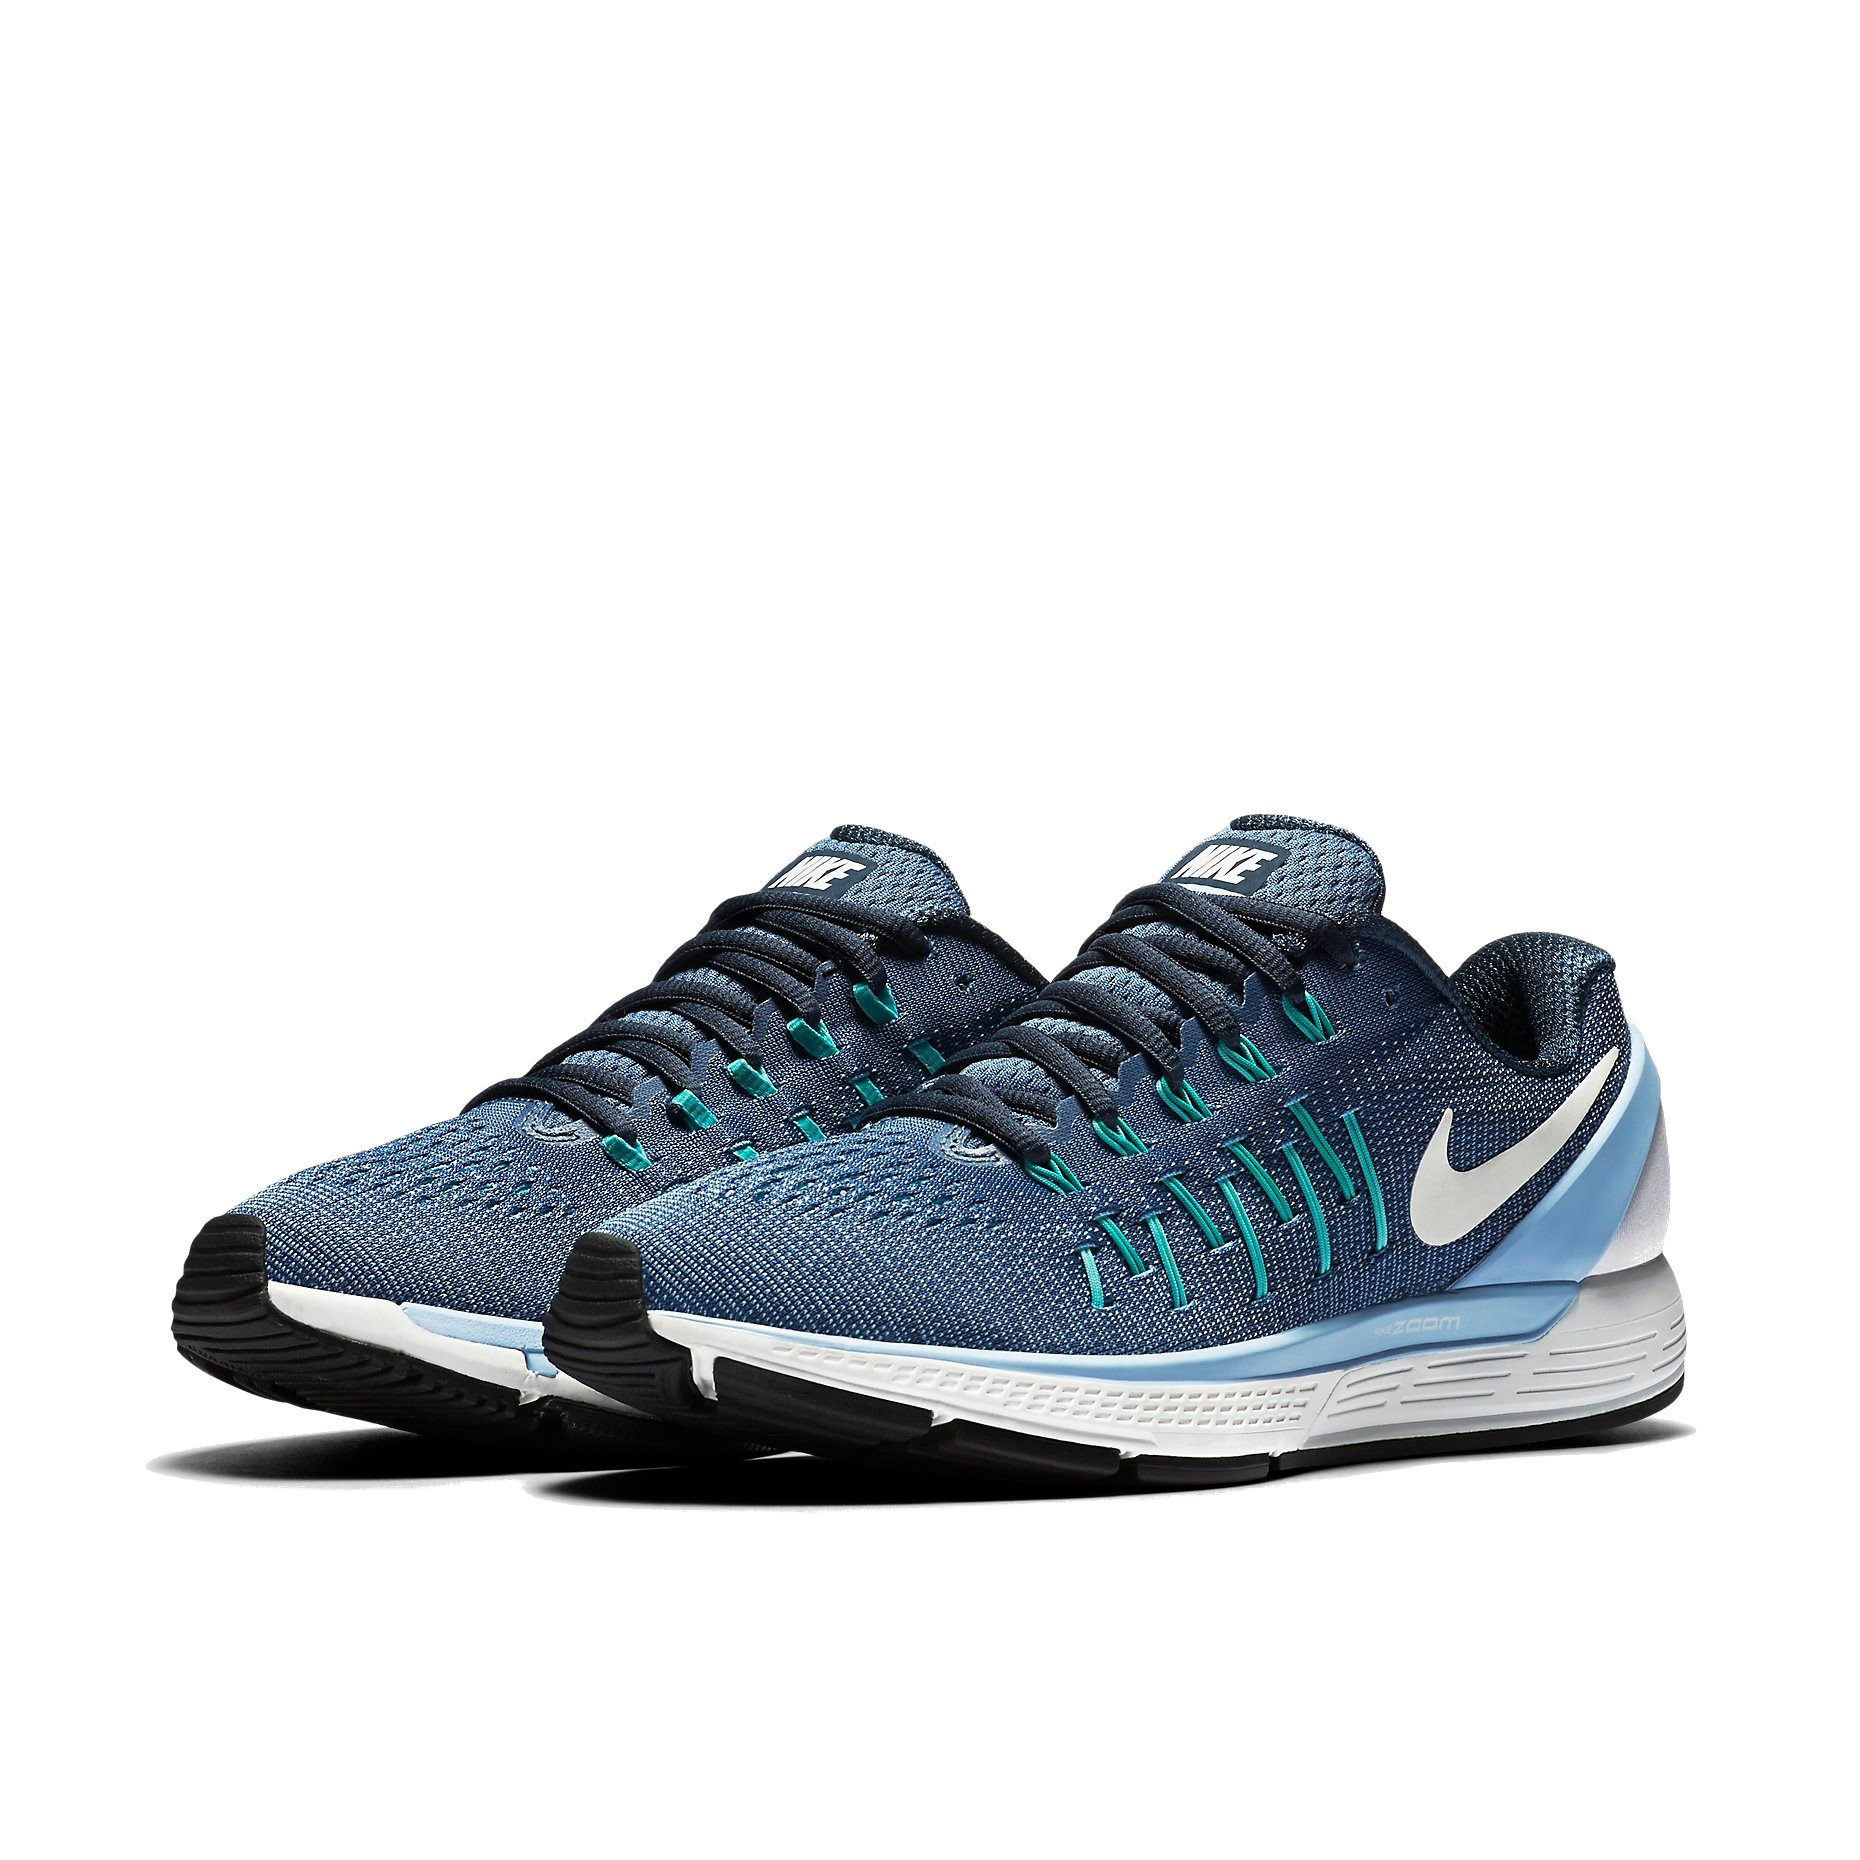 Nike Women's Air Zoom Odyssey-2 Running Shoe - 12 B(M) US by NIKE